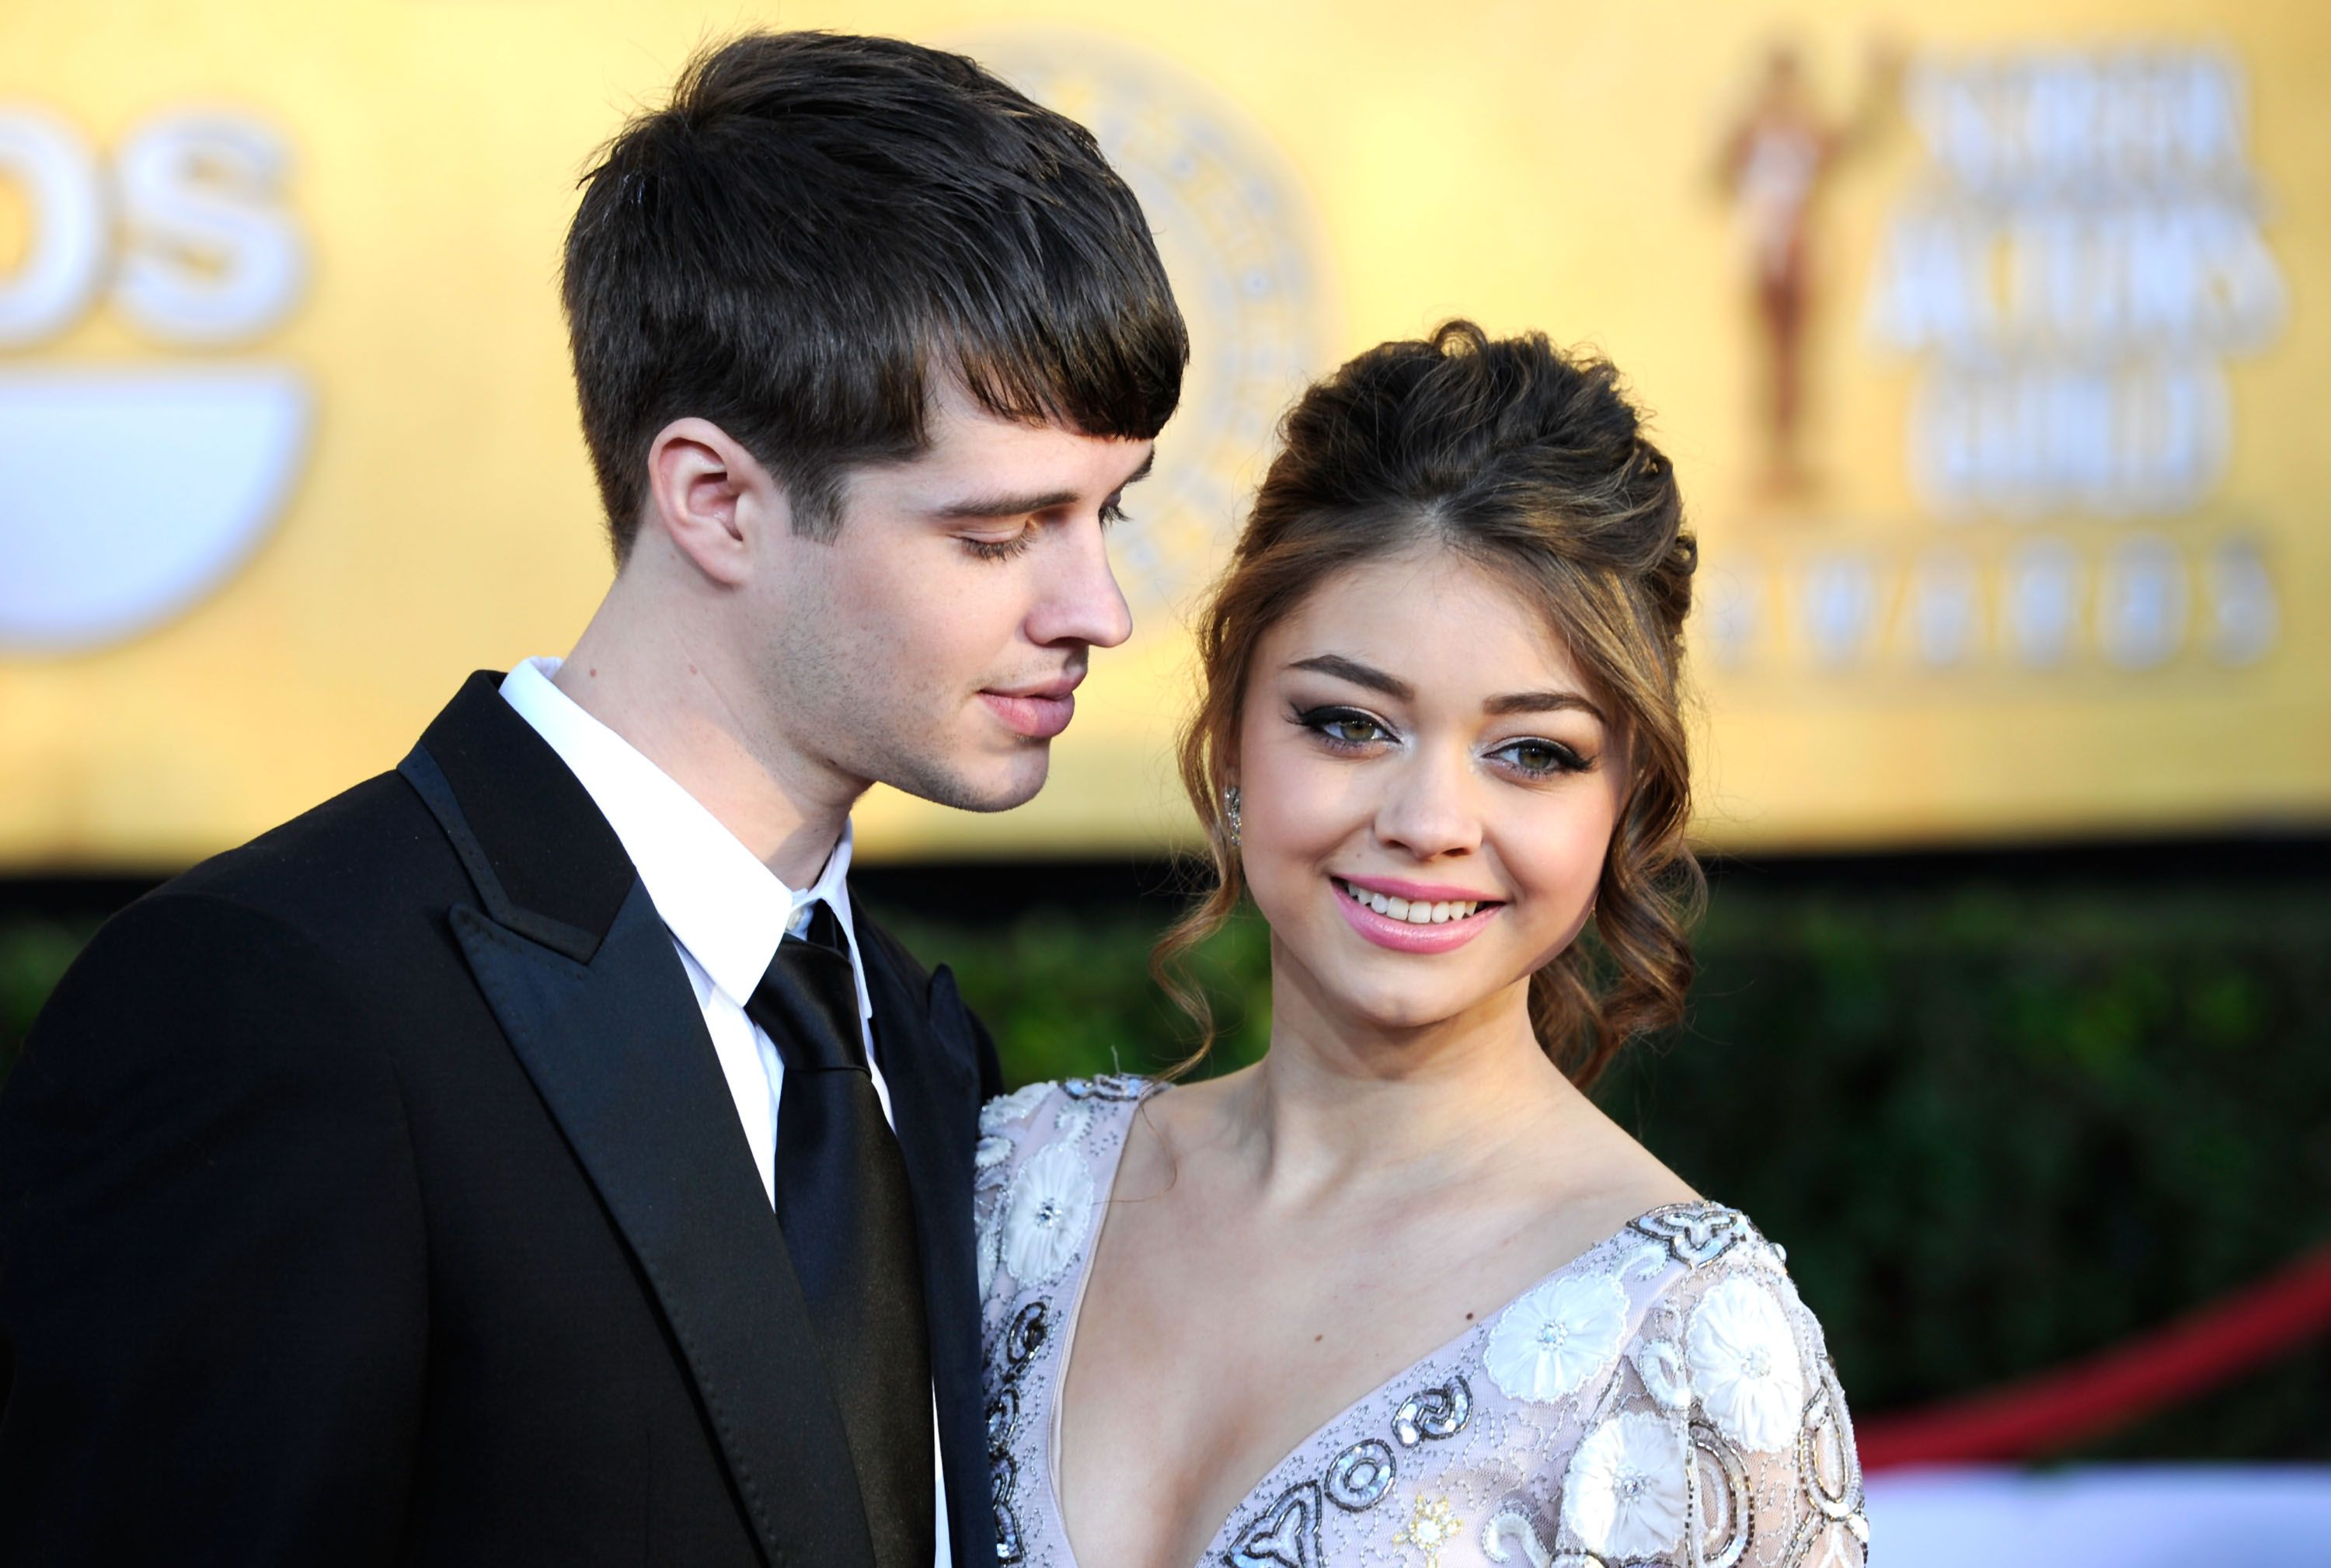 Matt Prokop and Sarah Hyland at the 18th Annual Screen Actors Guild Awards in 2012 in Los Angeles | Source: Getty Images